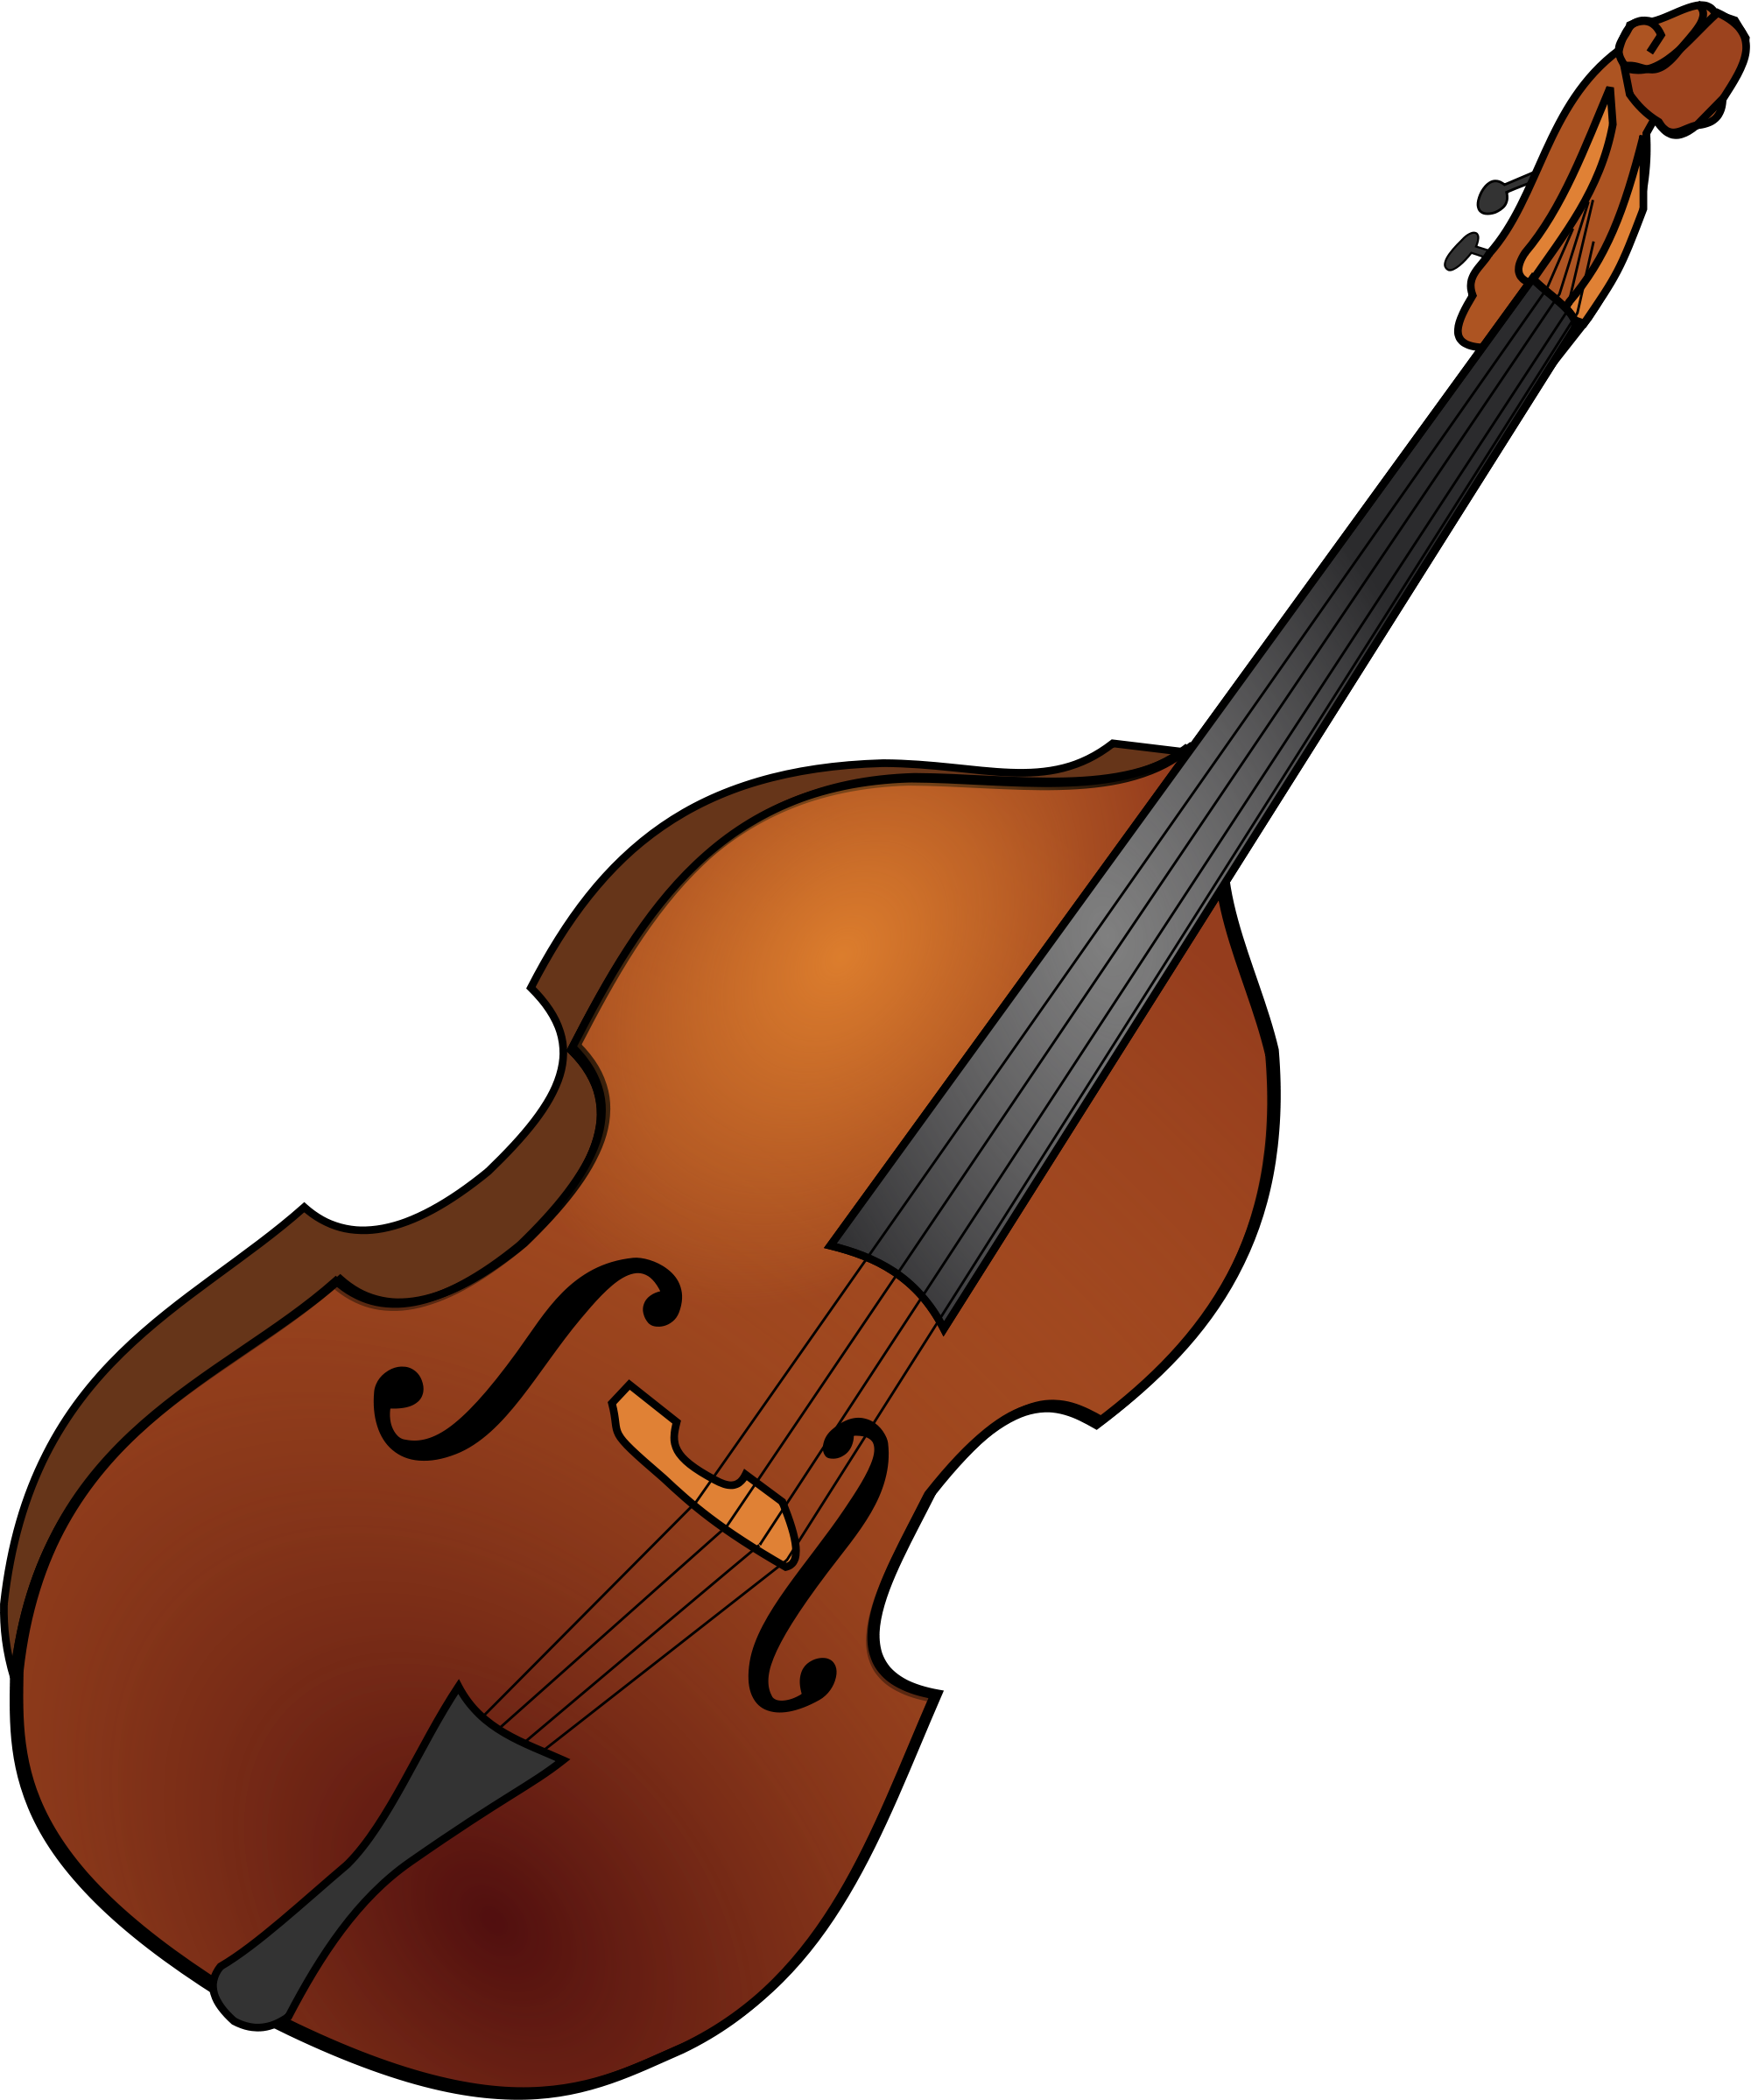 File:Double bass 1.svg - Wikimedia Commons